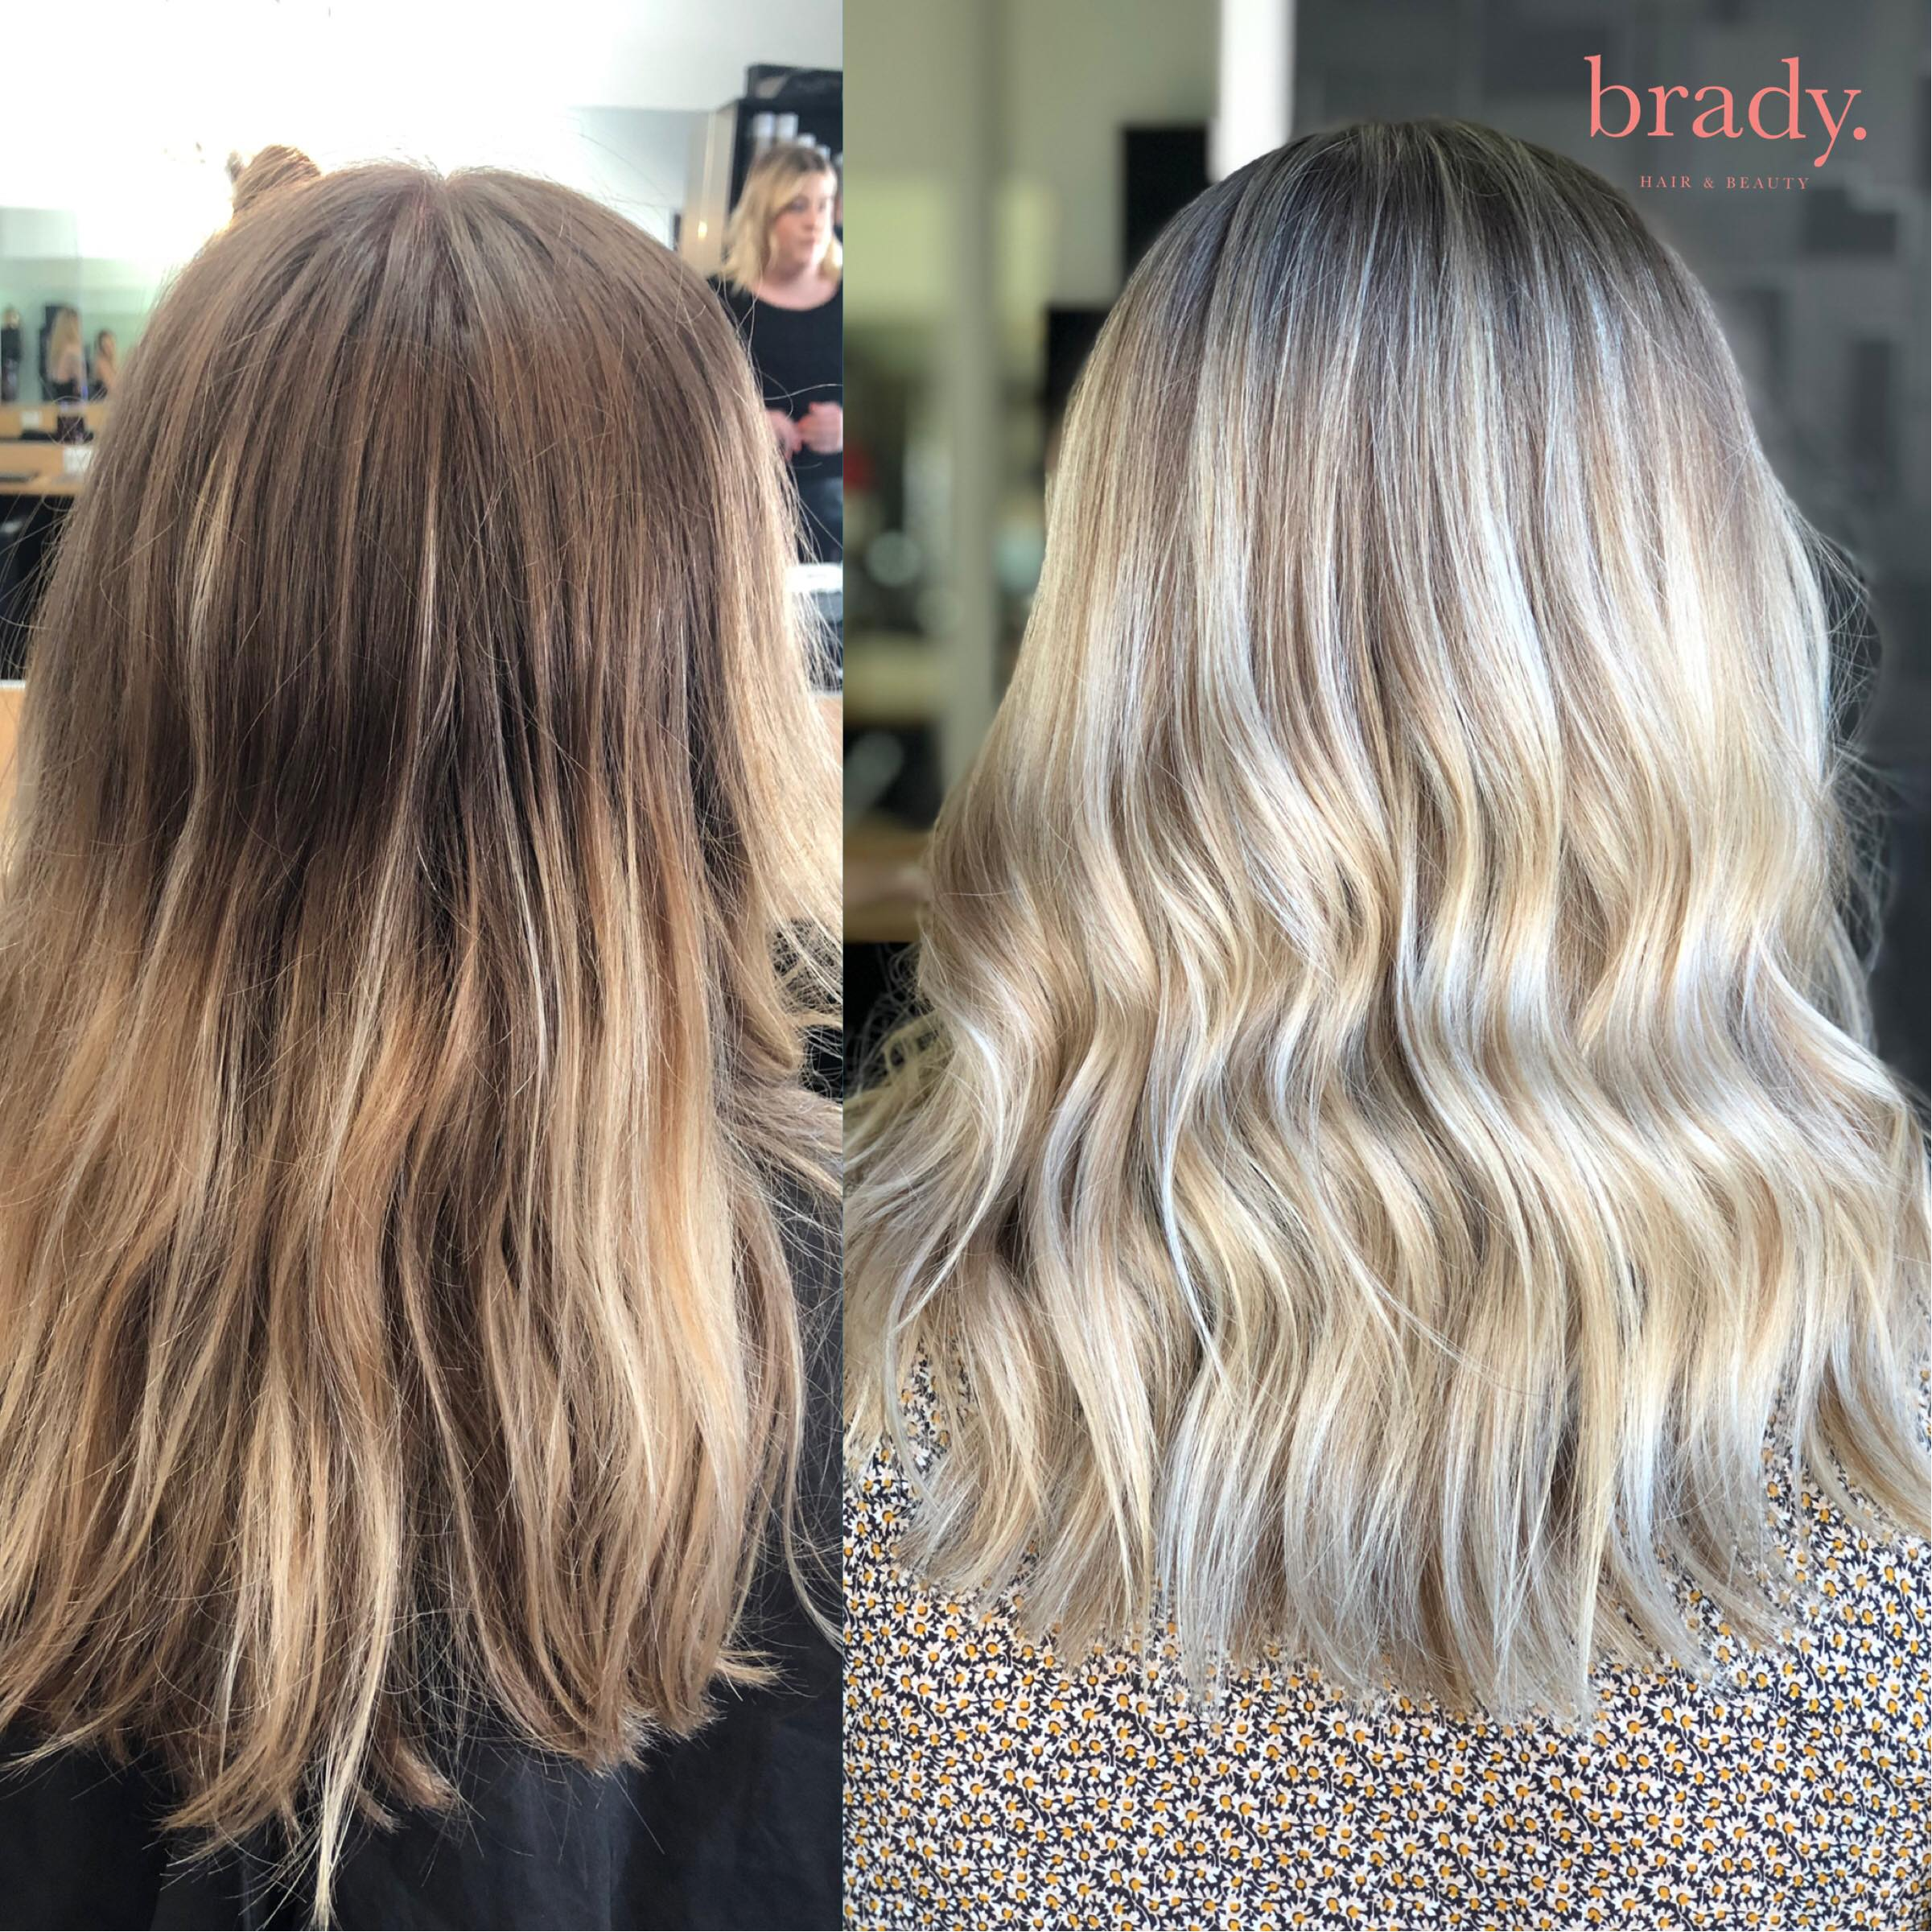 Before and after photo, medium wavy blonde hair styled by Brady. Hair & Beauty, Toowong.